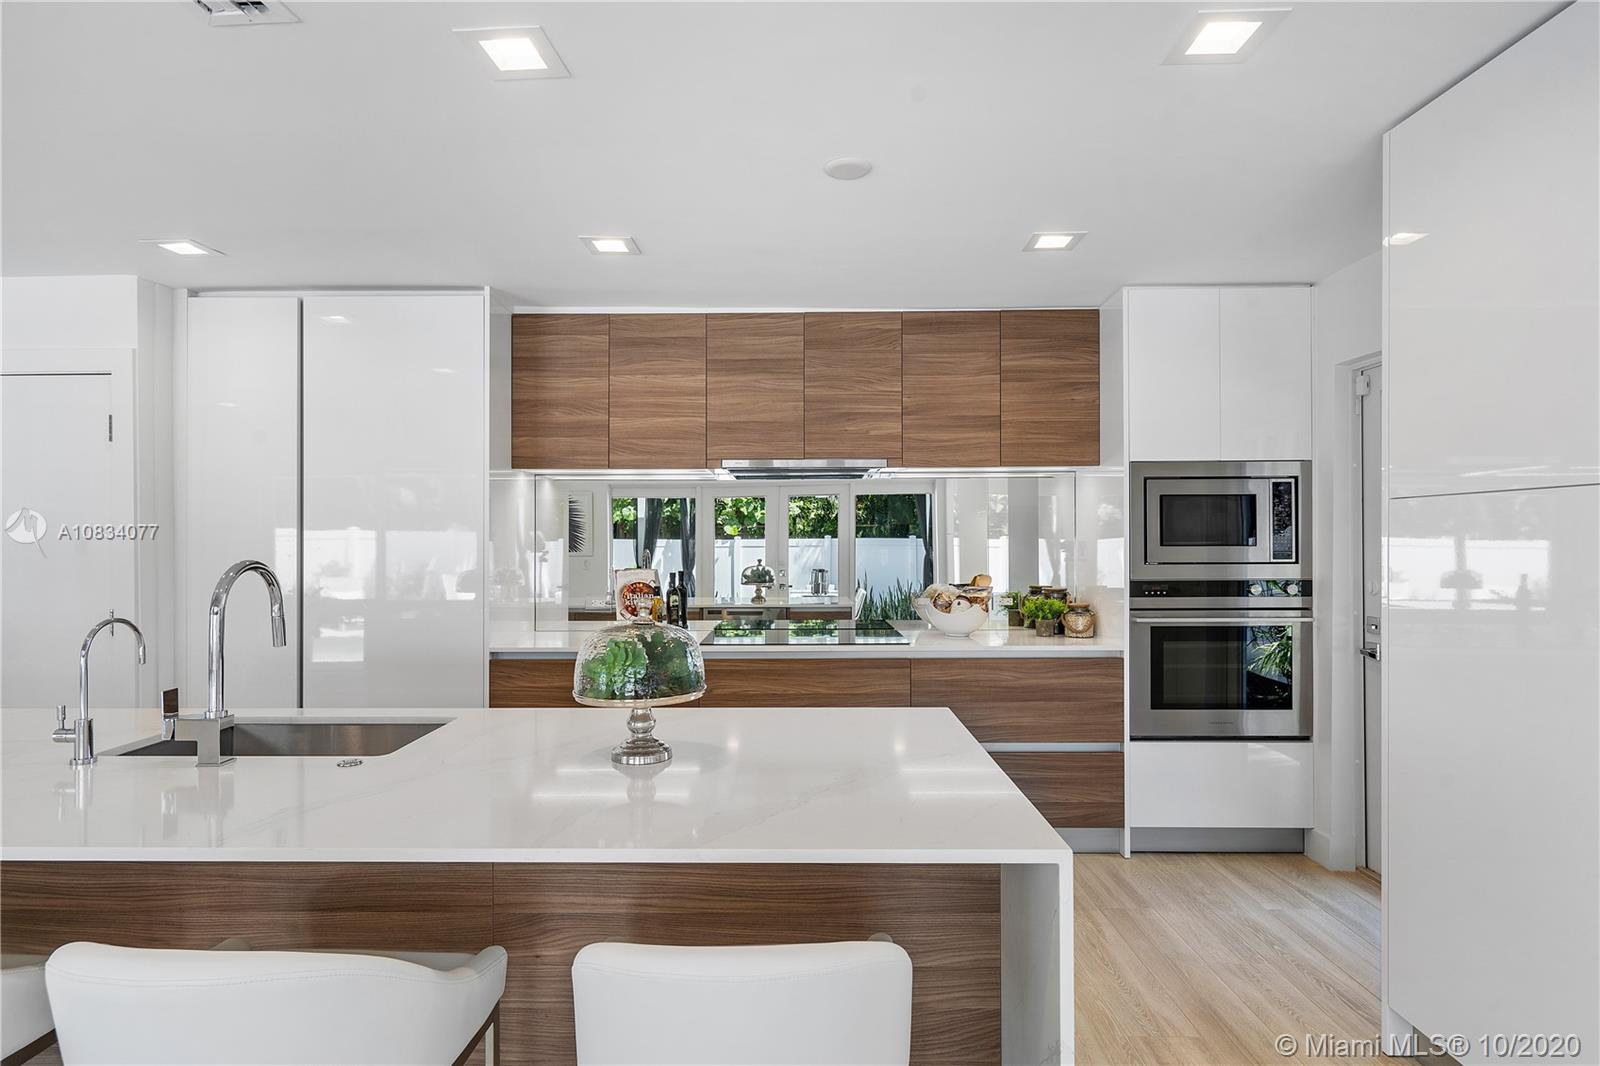 New Description: